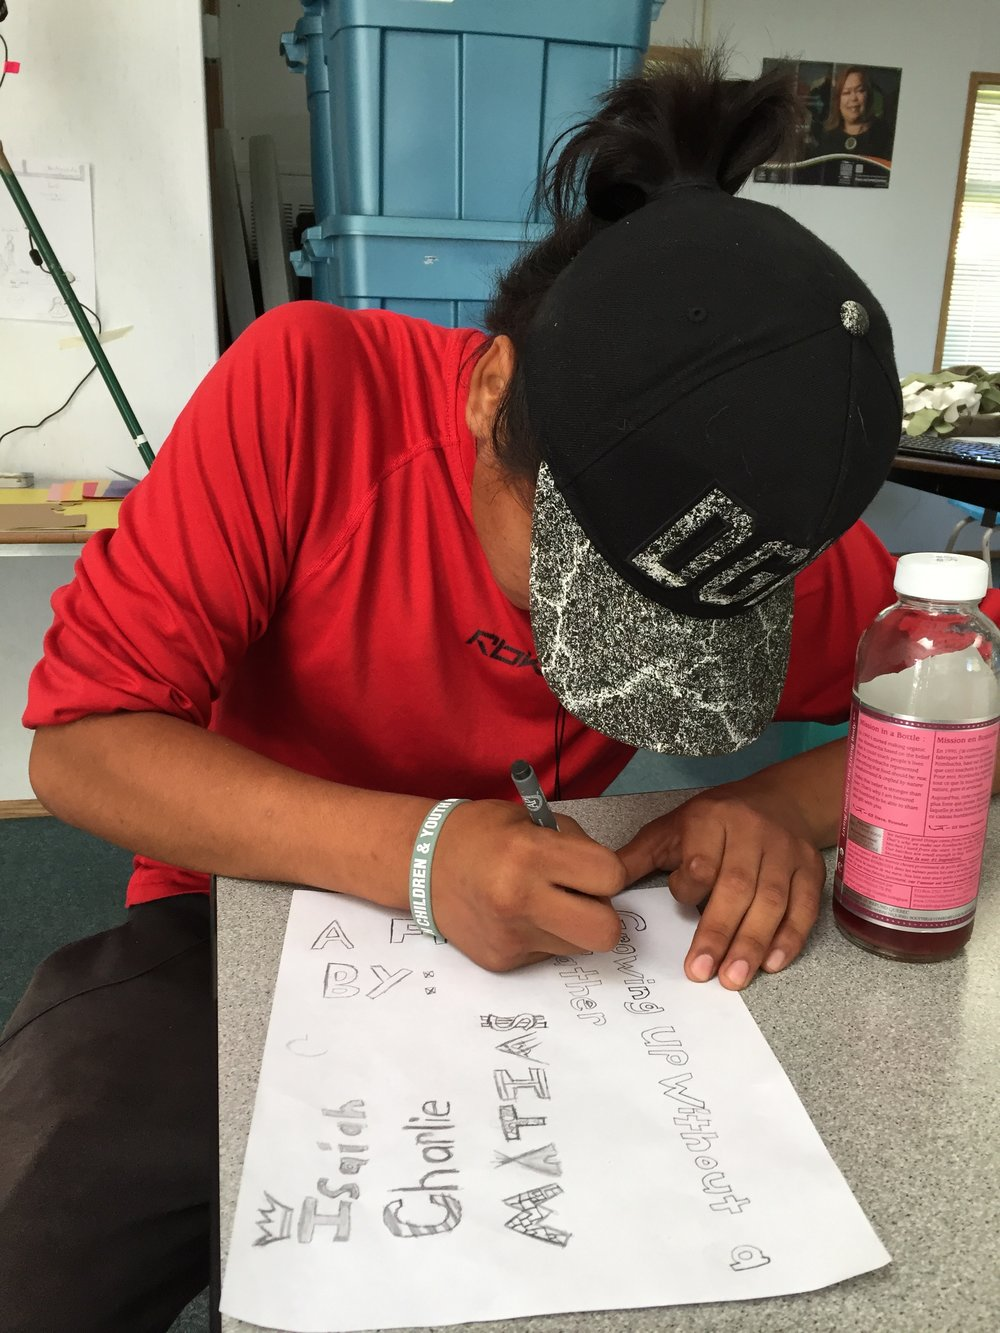 Isaiah creates the artwork for his credits.